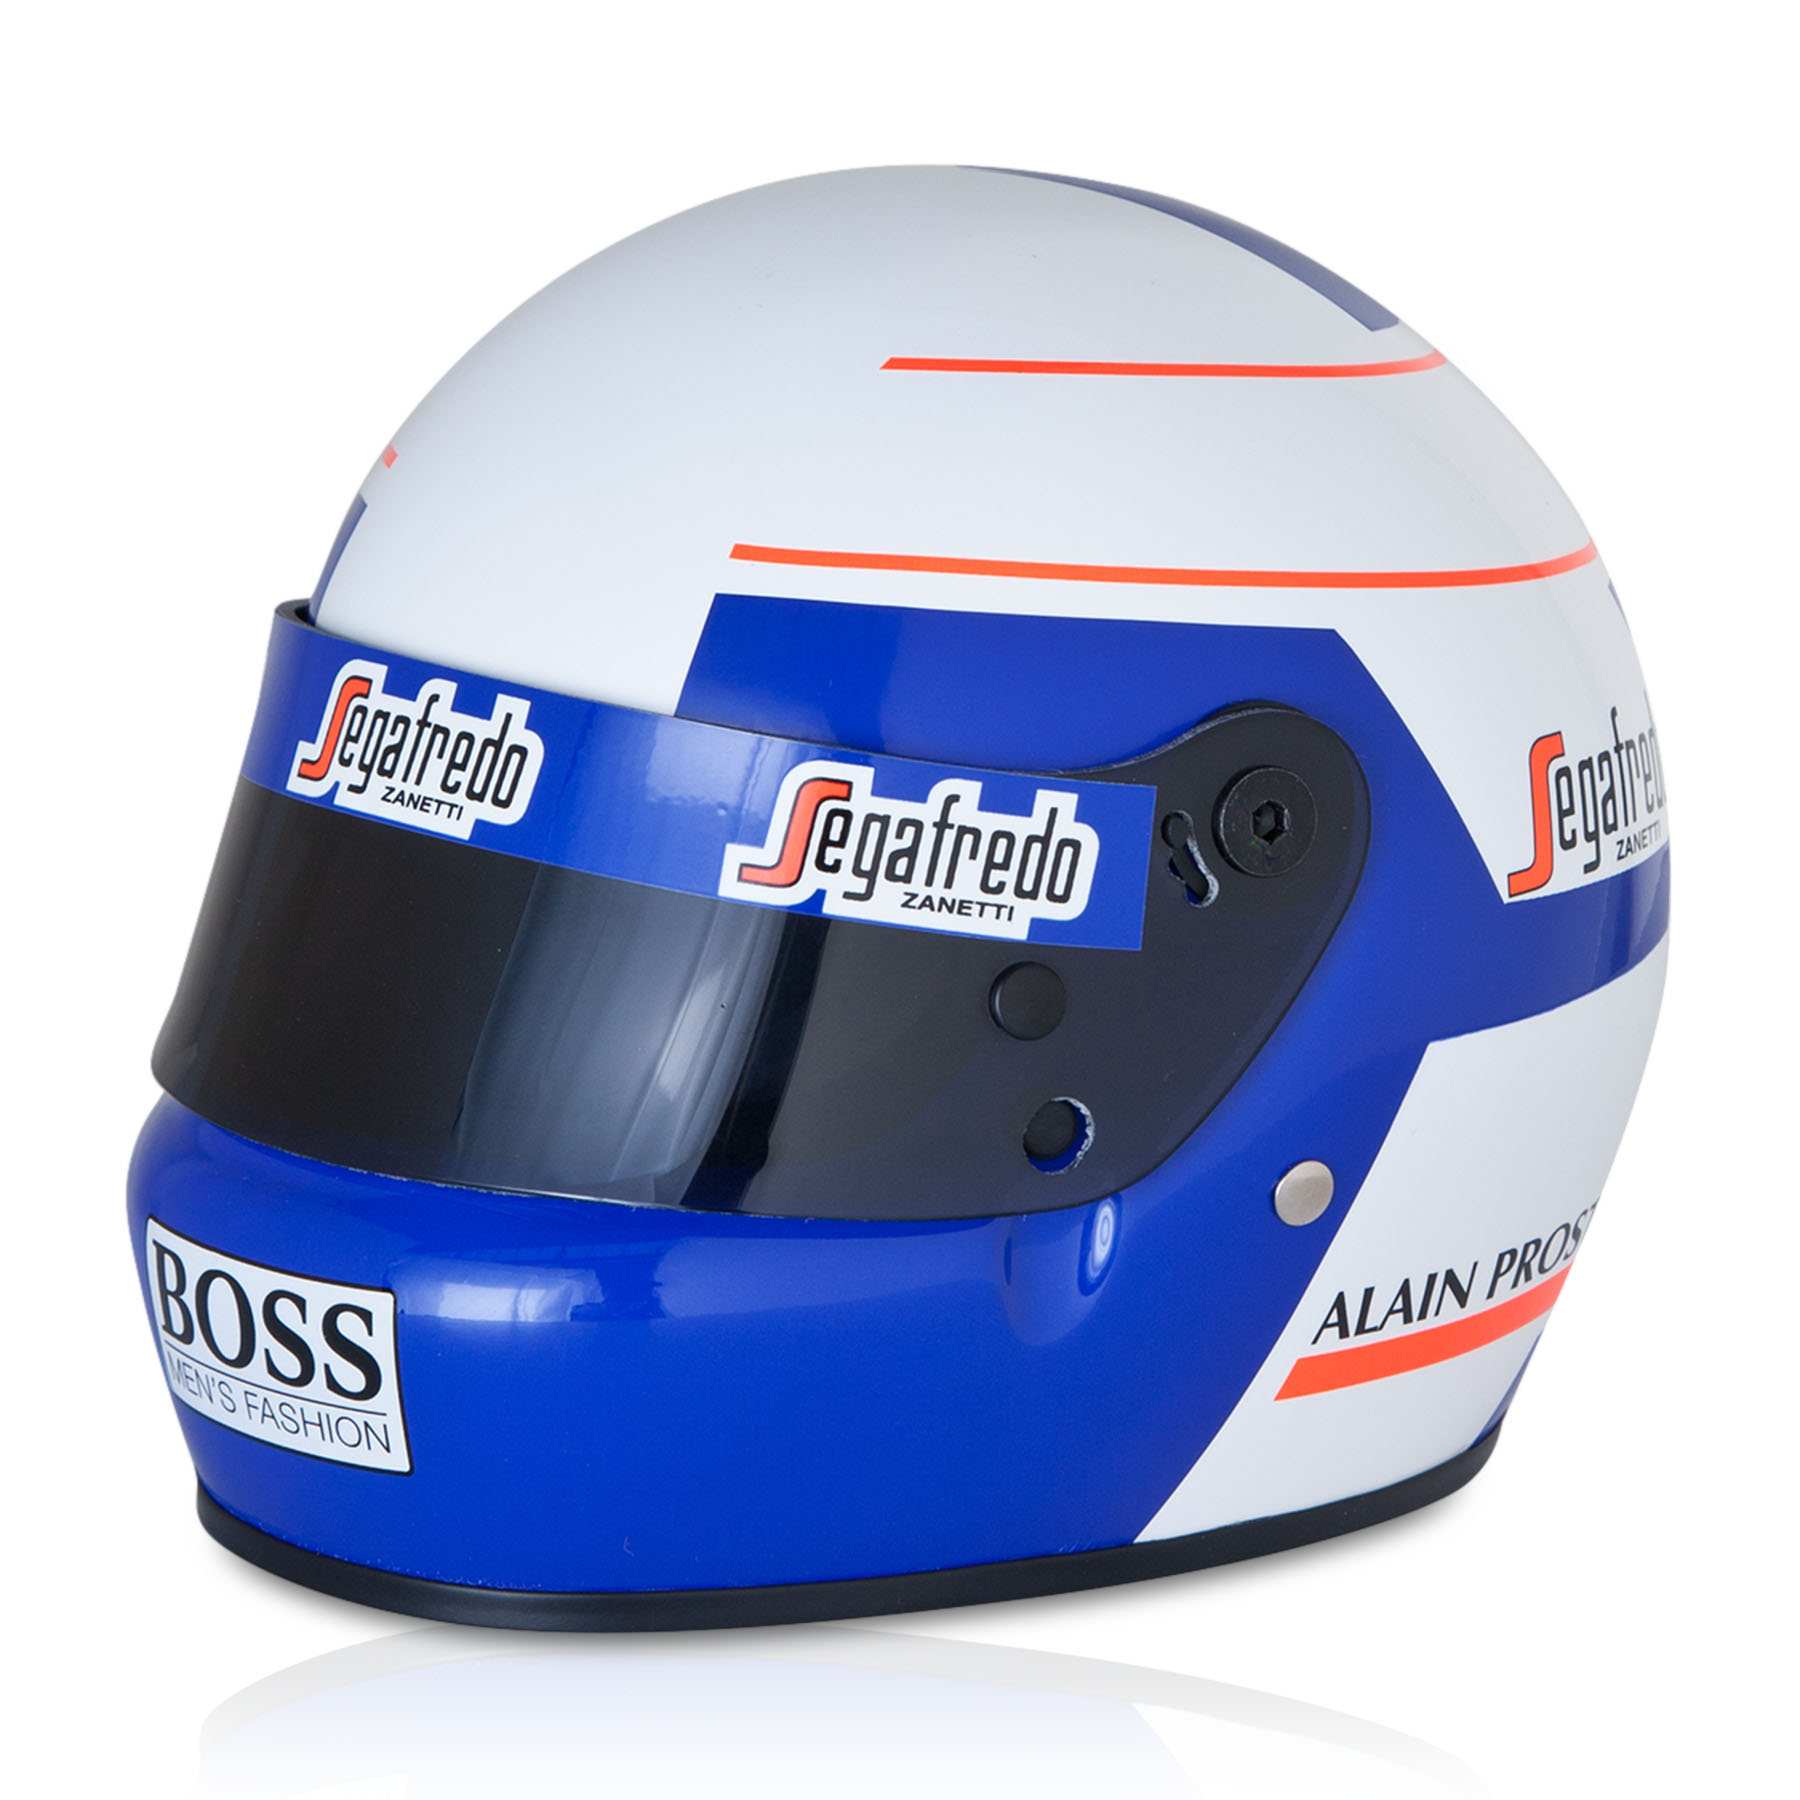 Team McLaren 50th Anniversary Alain Prost World Champion 1985 1:2 Scale Helmet